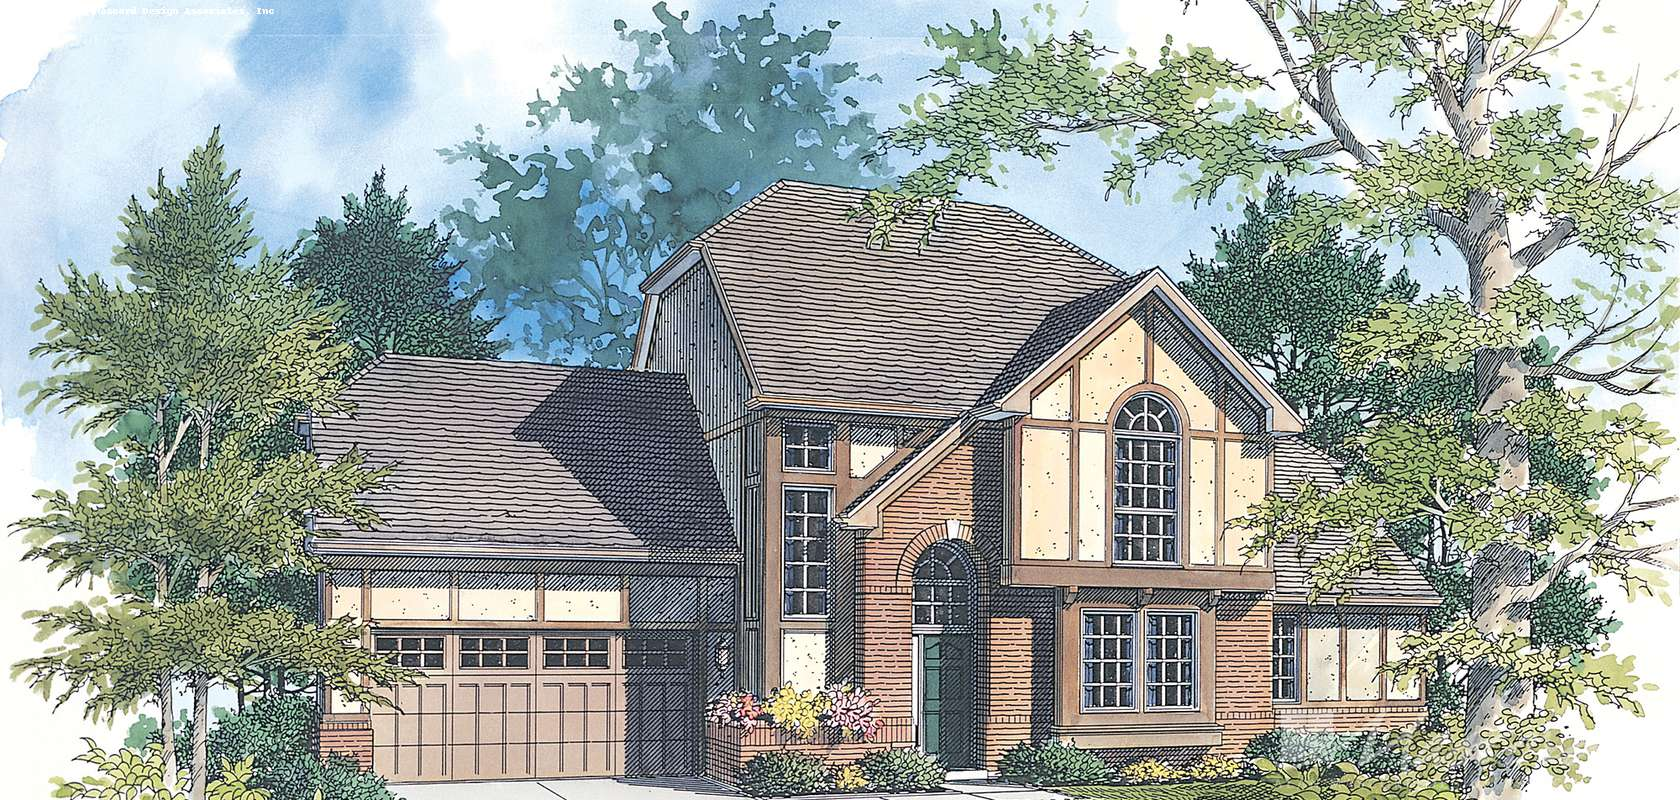 Mascord House Plan 2156A: The Winslet